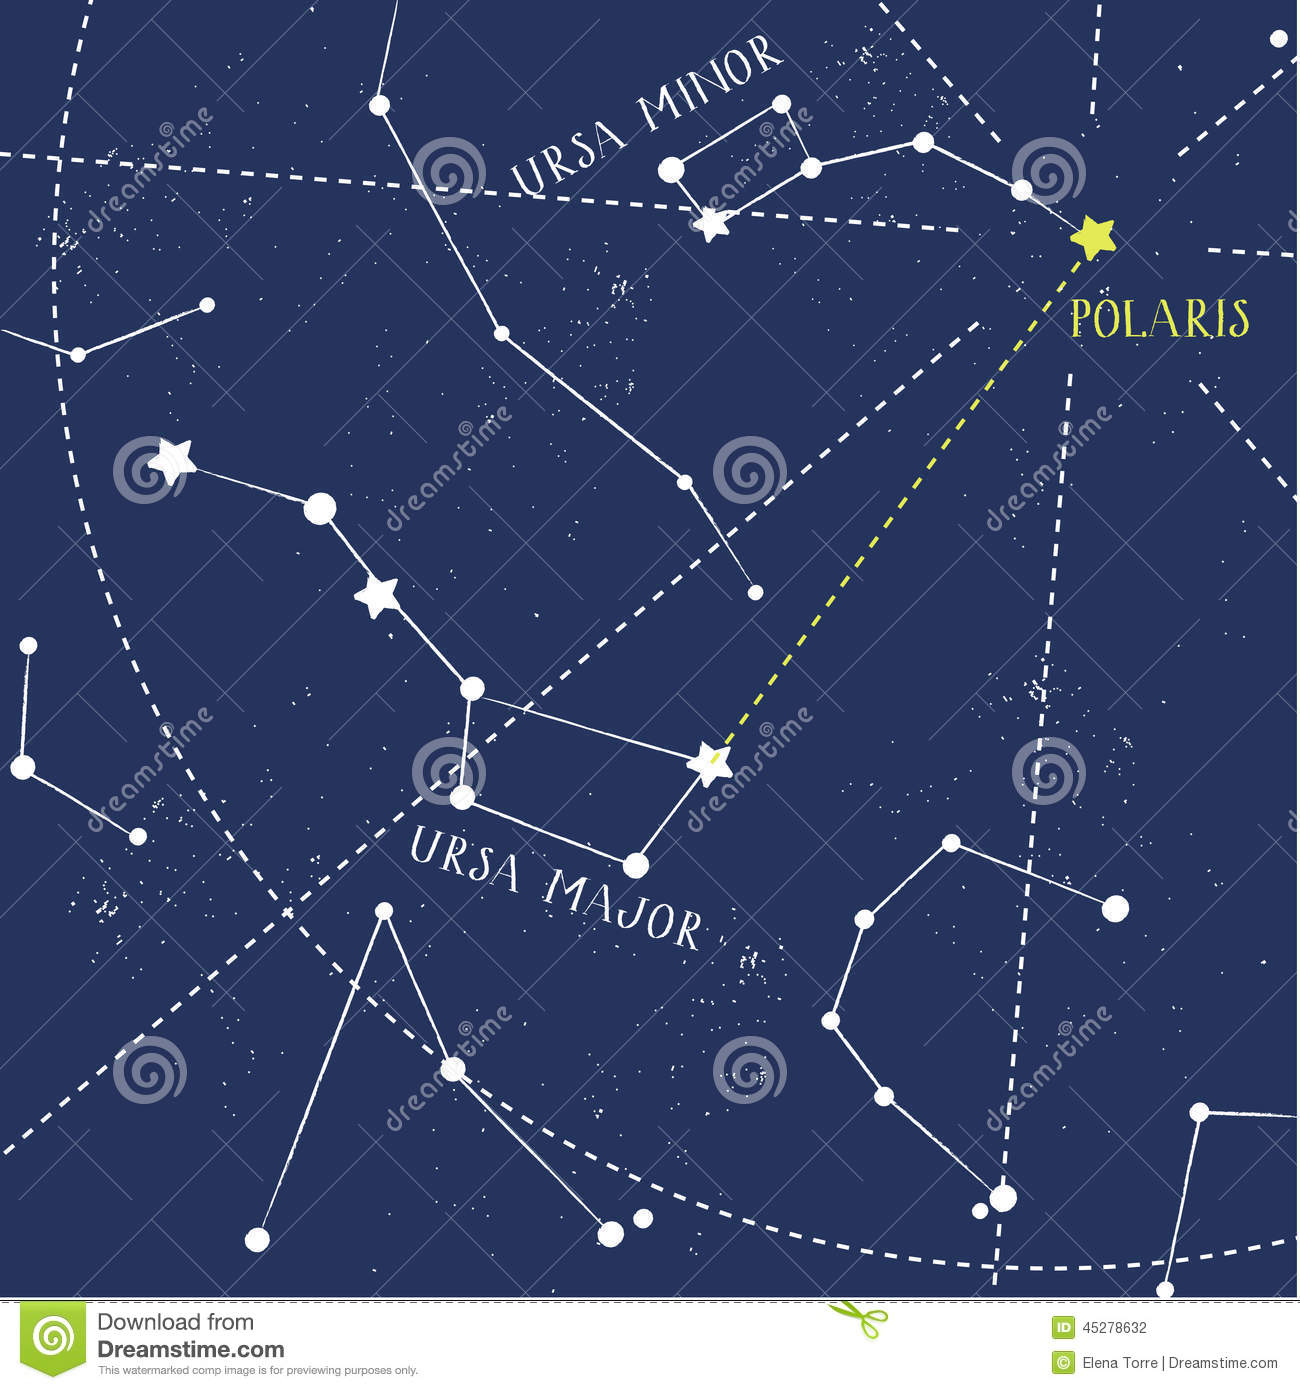 Constellations Ursa Major And Minor Polaris Stock Photography